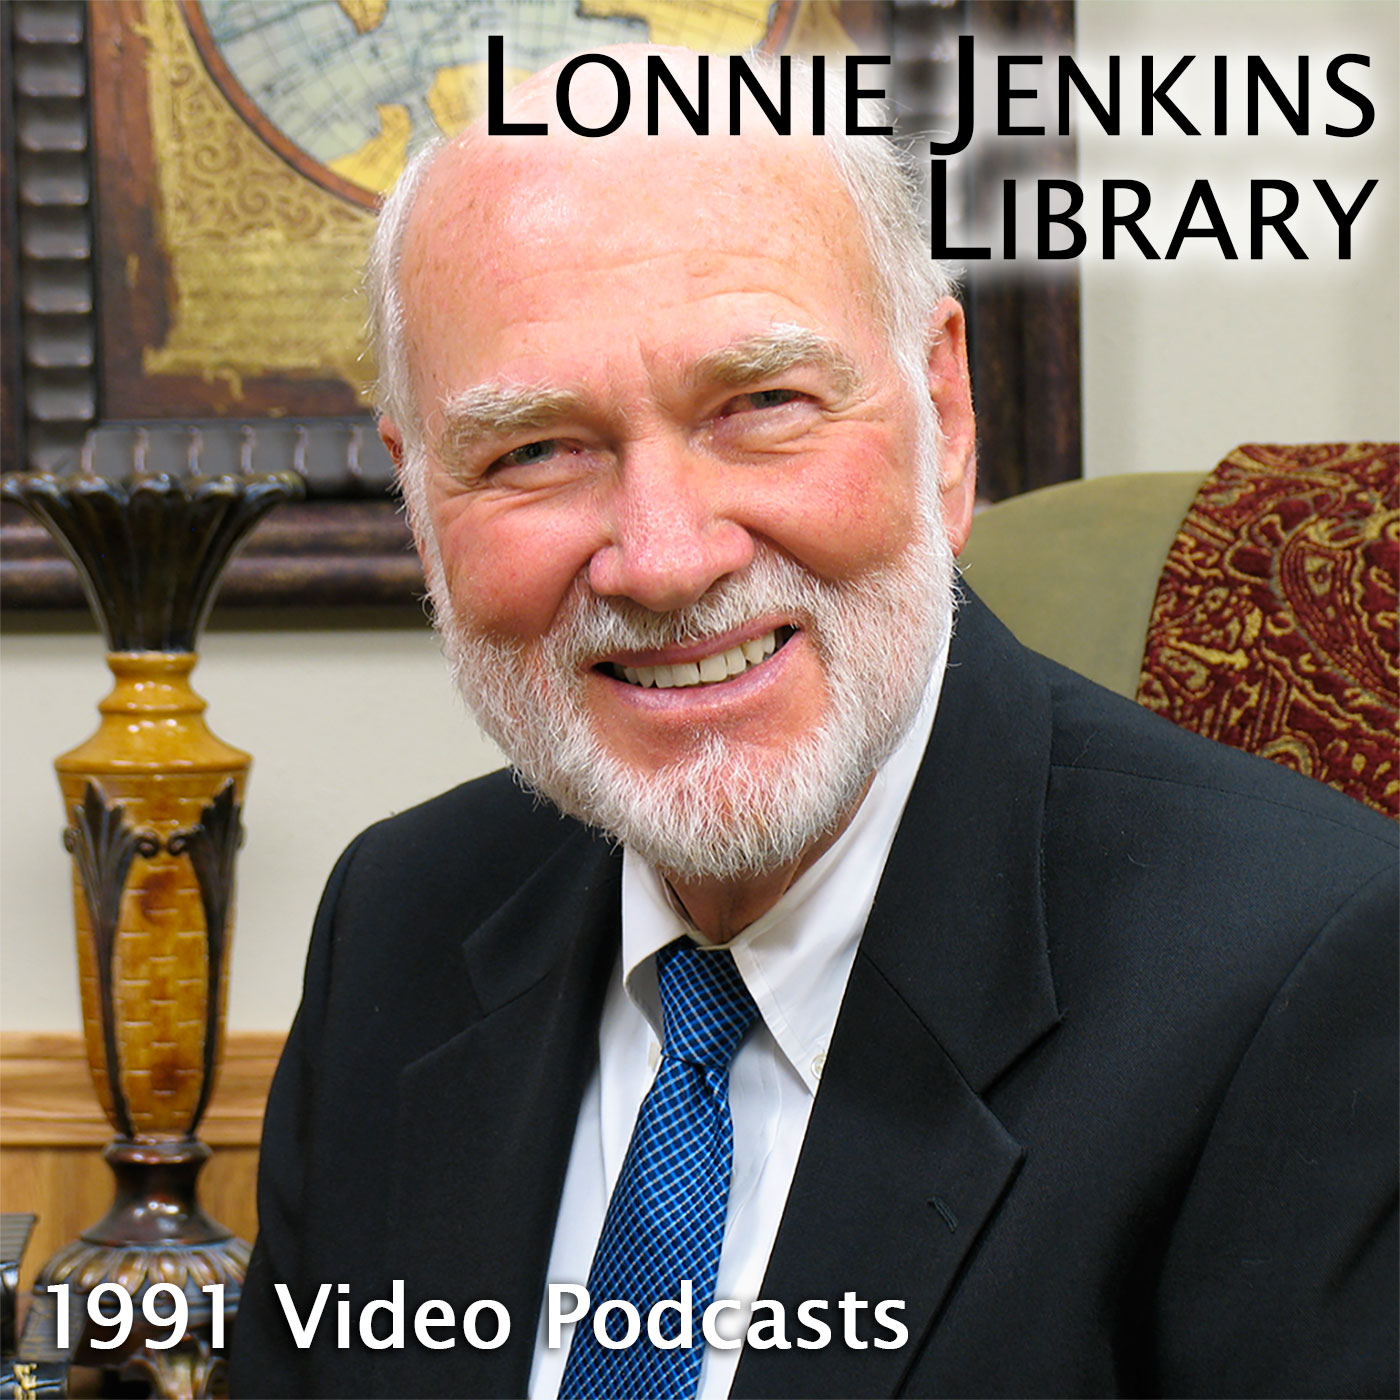 BCF 1991 Video Archives - Lonnie Jenkins